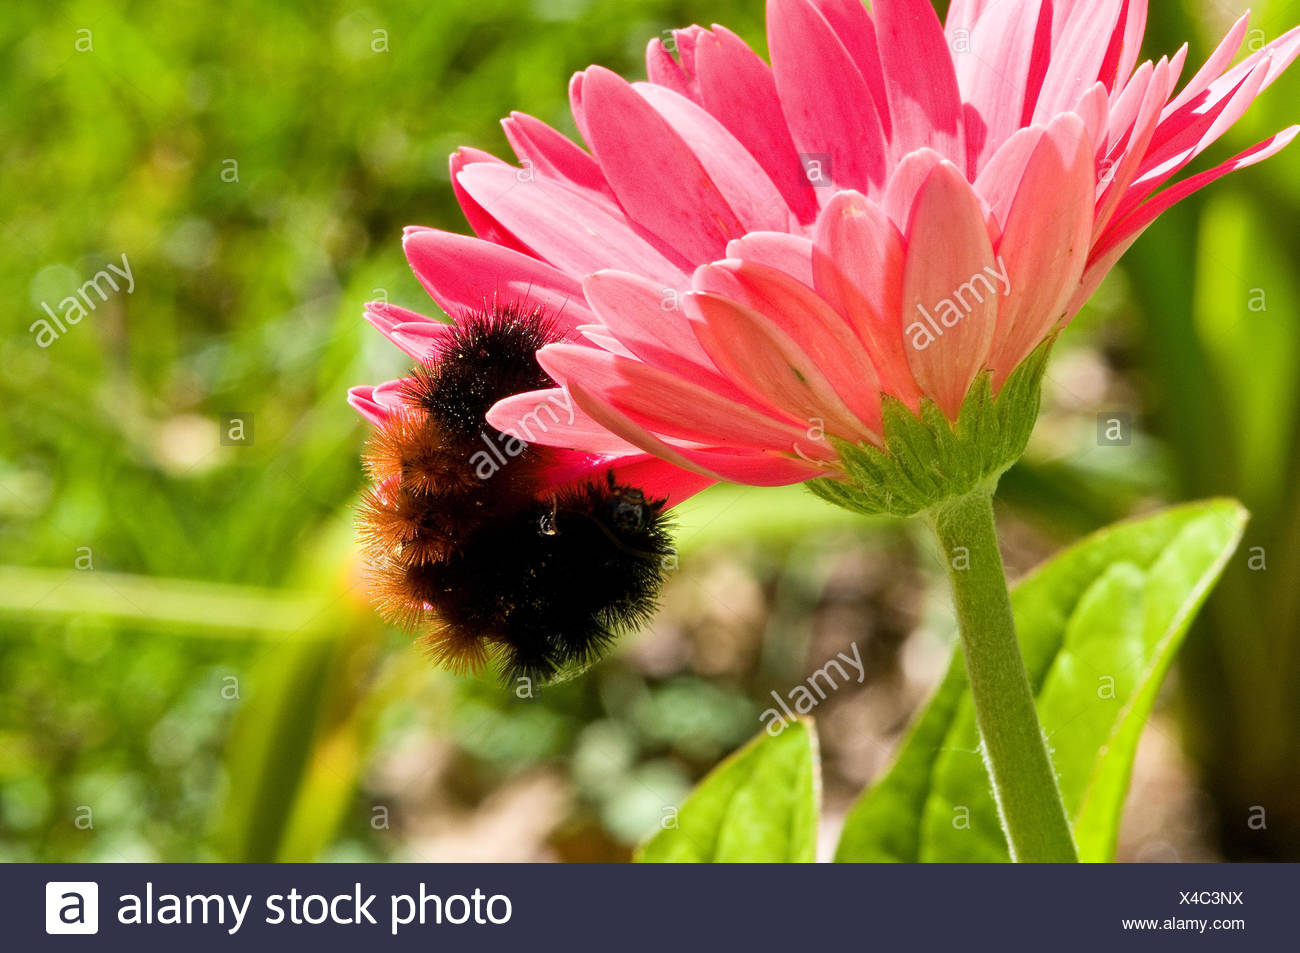 A banded wooly bear caterpillar on a pink gerbera daisy. - Stock Image